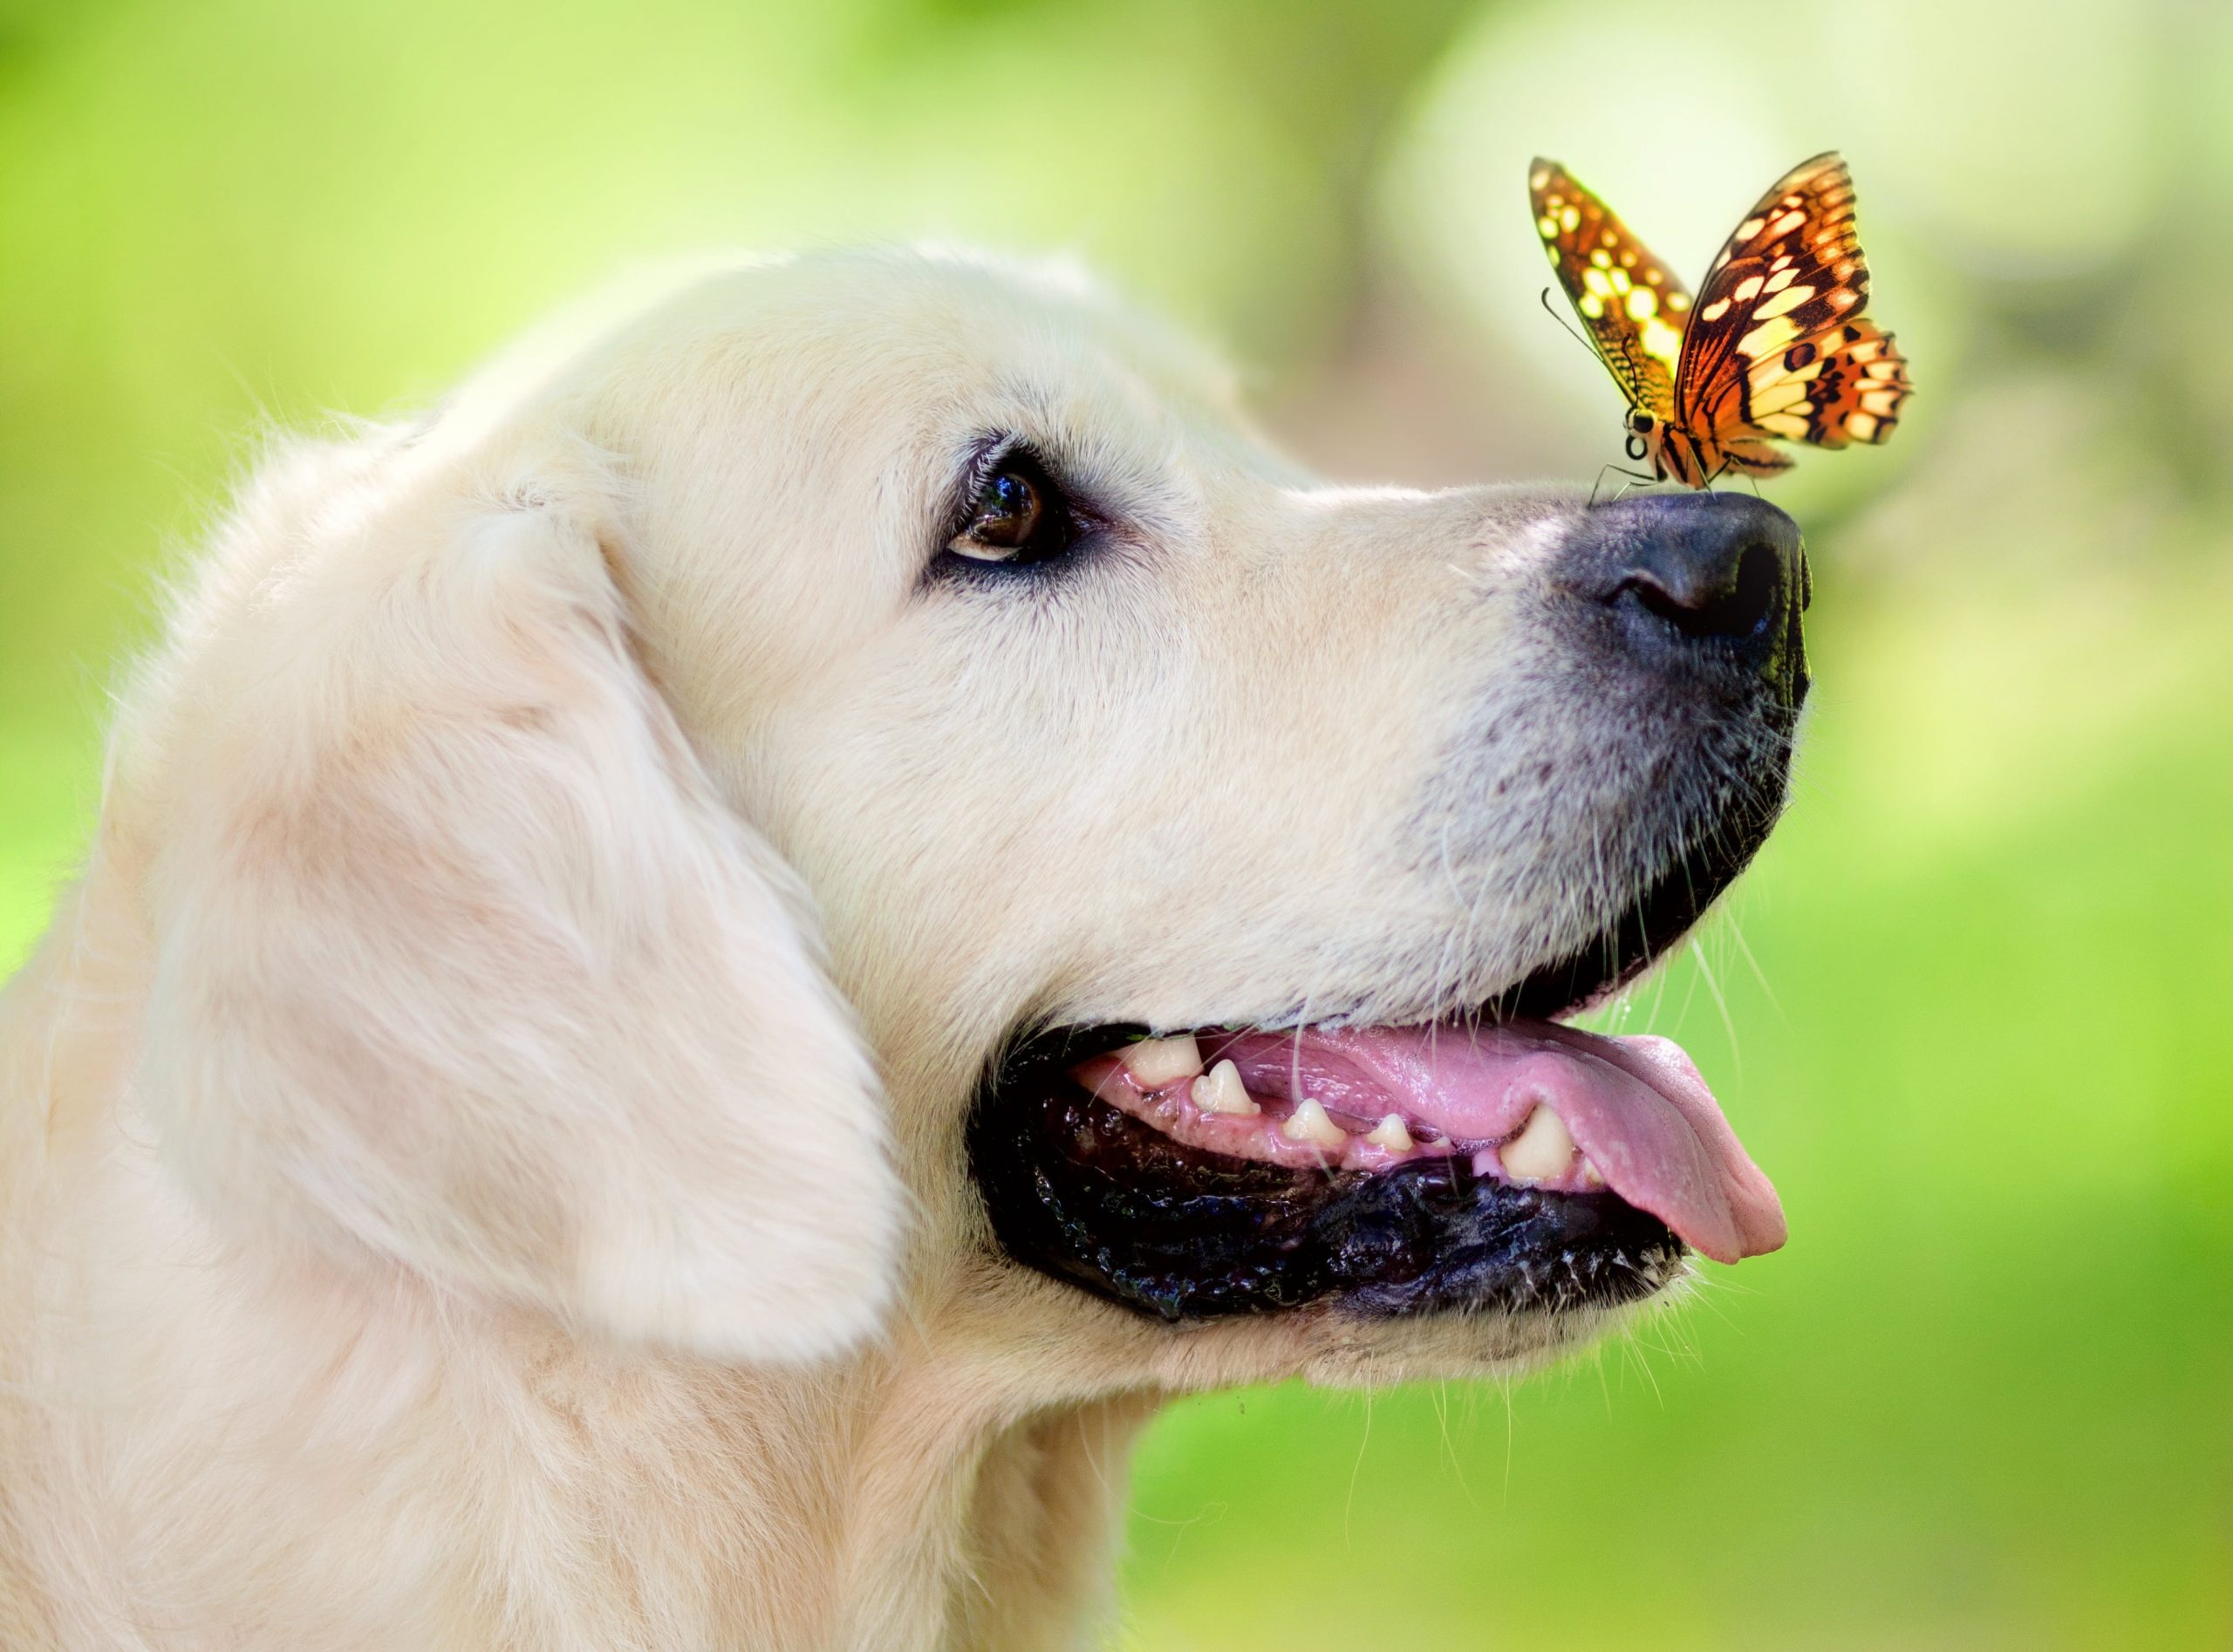 Yellow Labrador Retriever Dog Muzzle Butterfly Tongue Sticking Out Wallpaper Wallpaper For You The Best Wallpaper For Desktop Mobile Animal Wallpaper